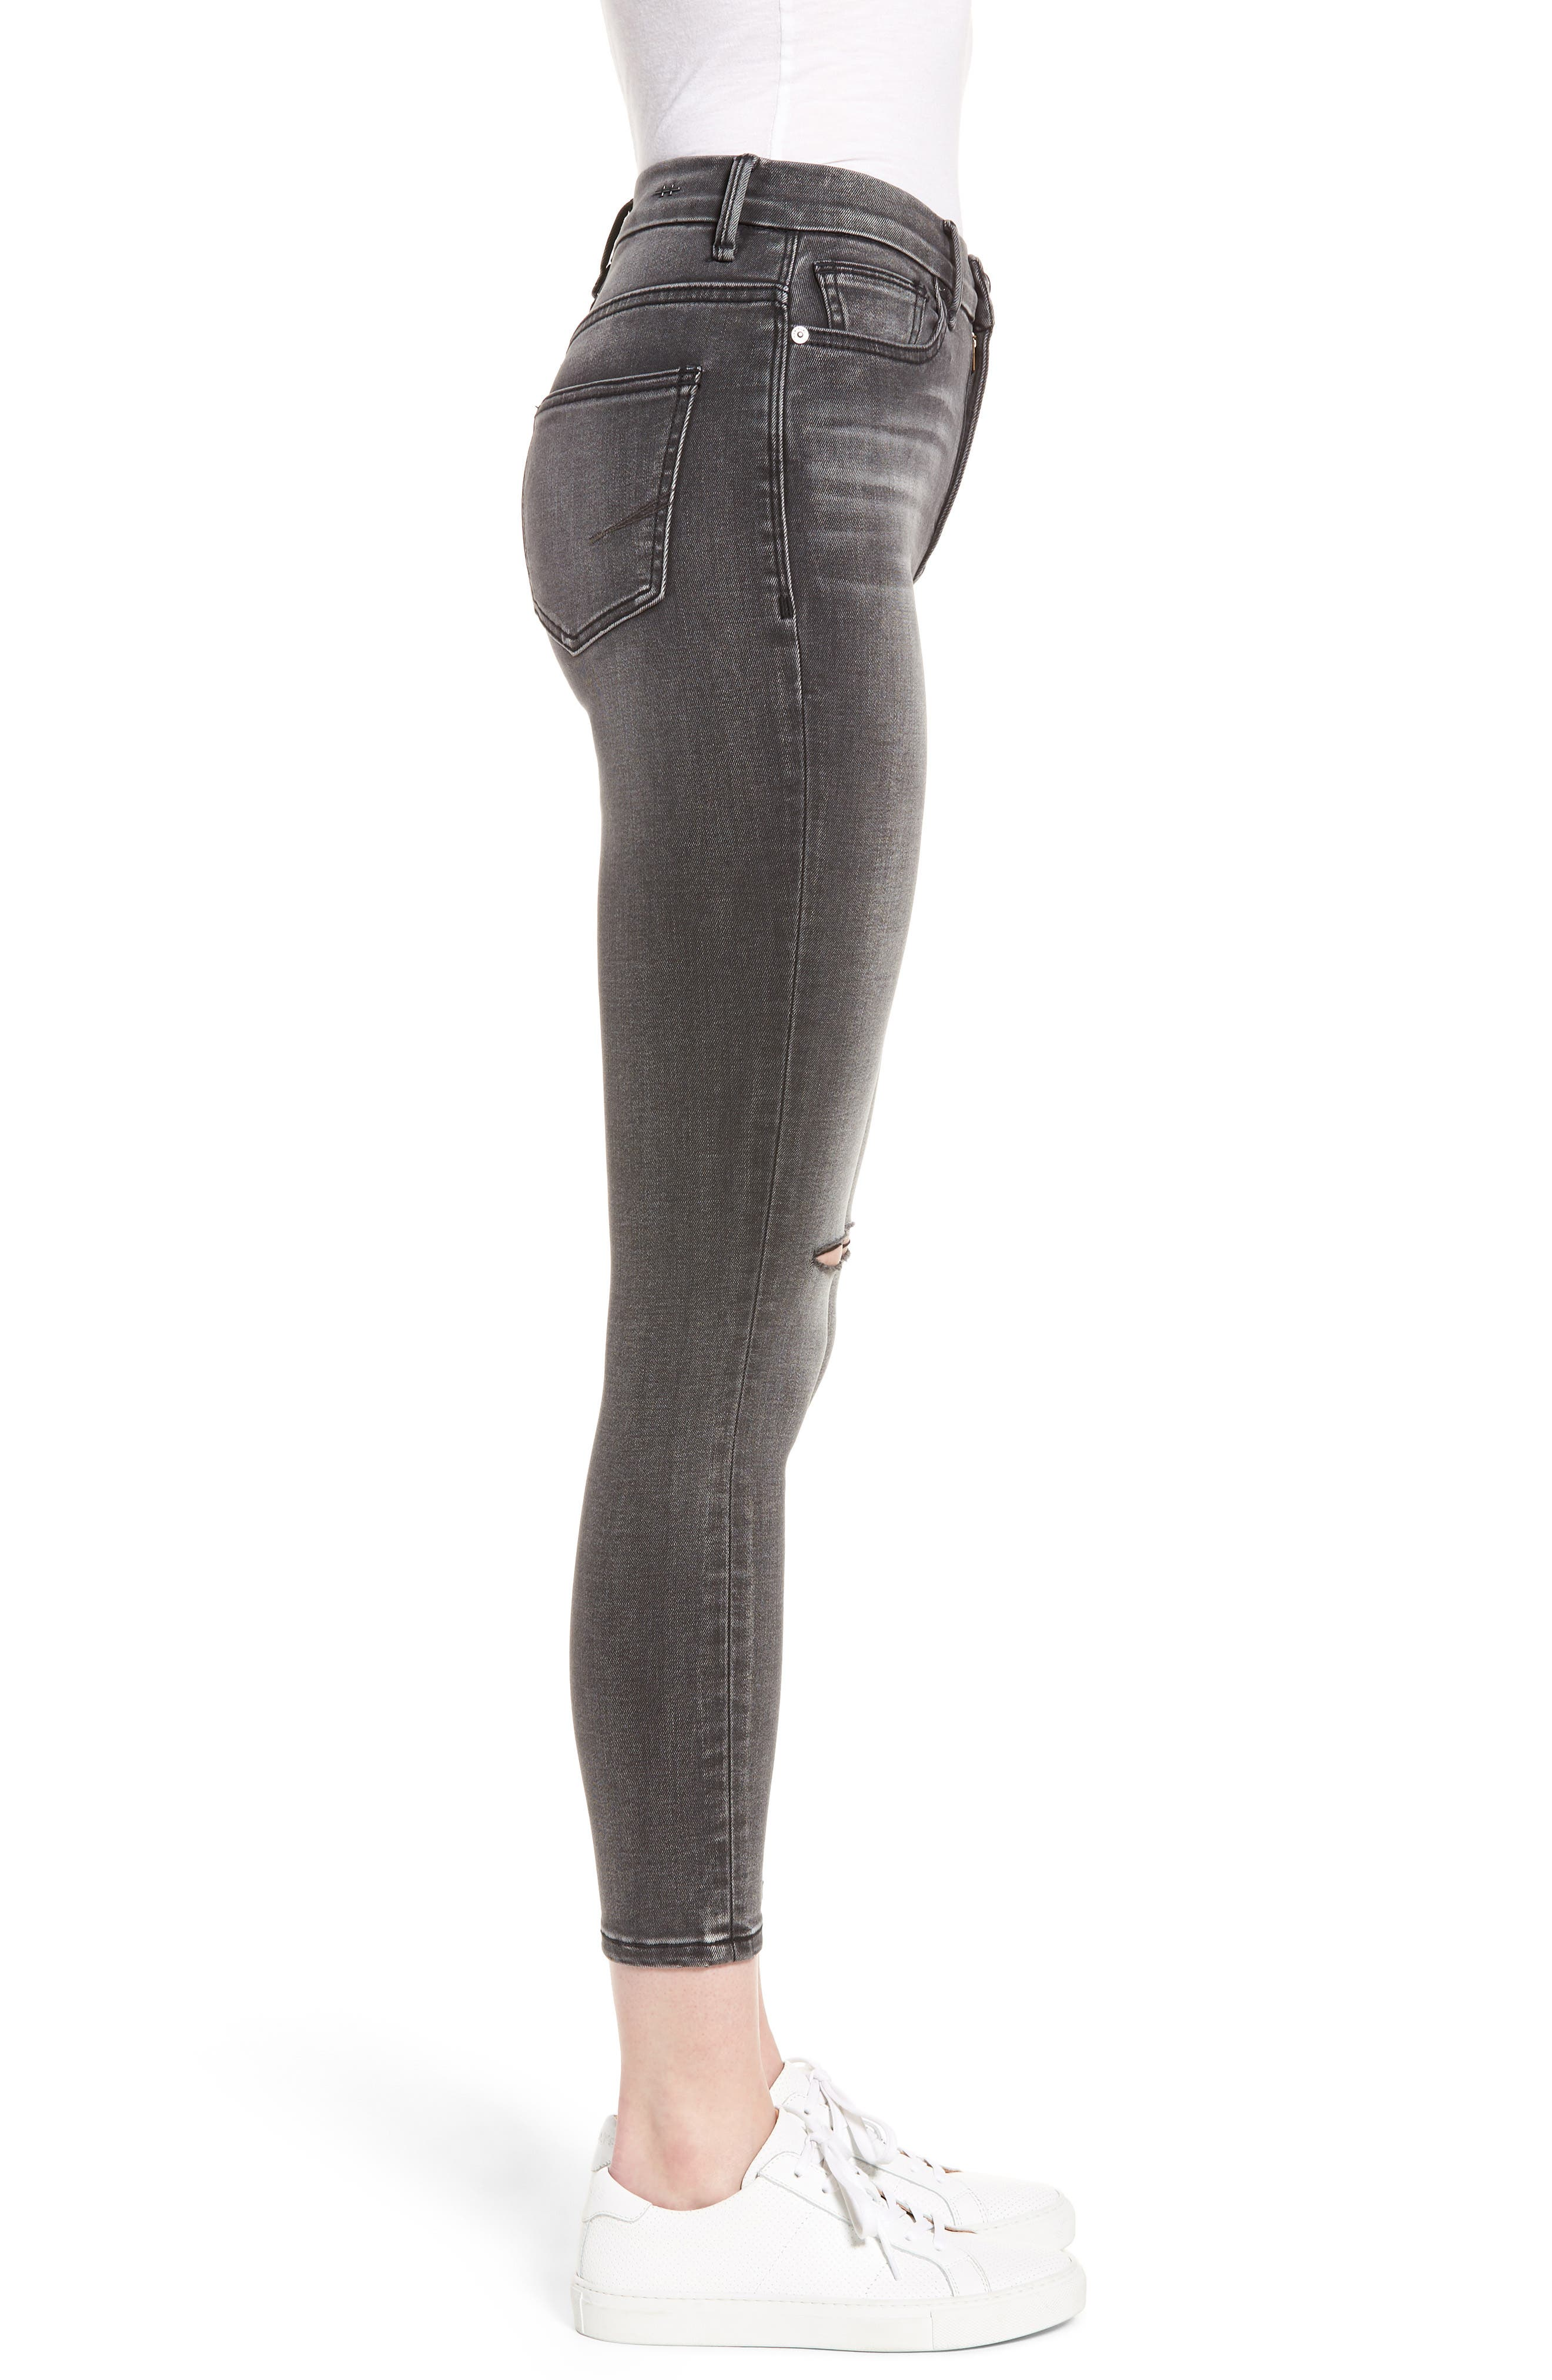 Cressa High Rise Ankle Skinny Jeans,                             Alternate thumbnail 3, color,                             Obsidian